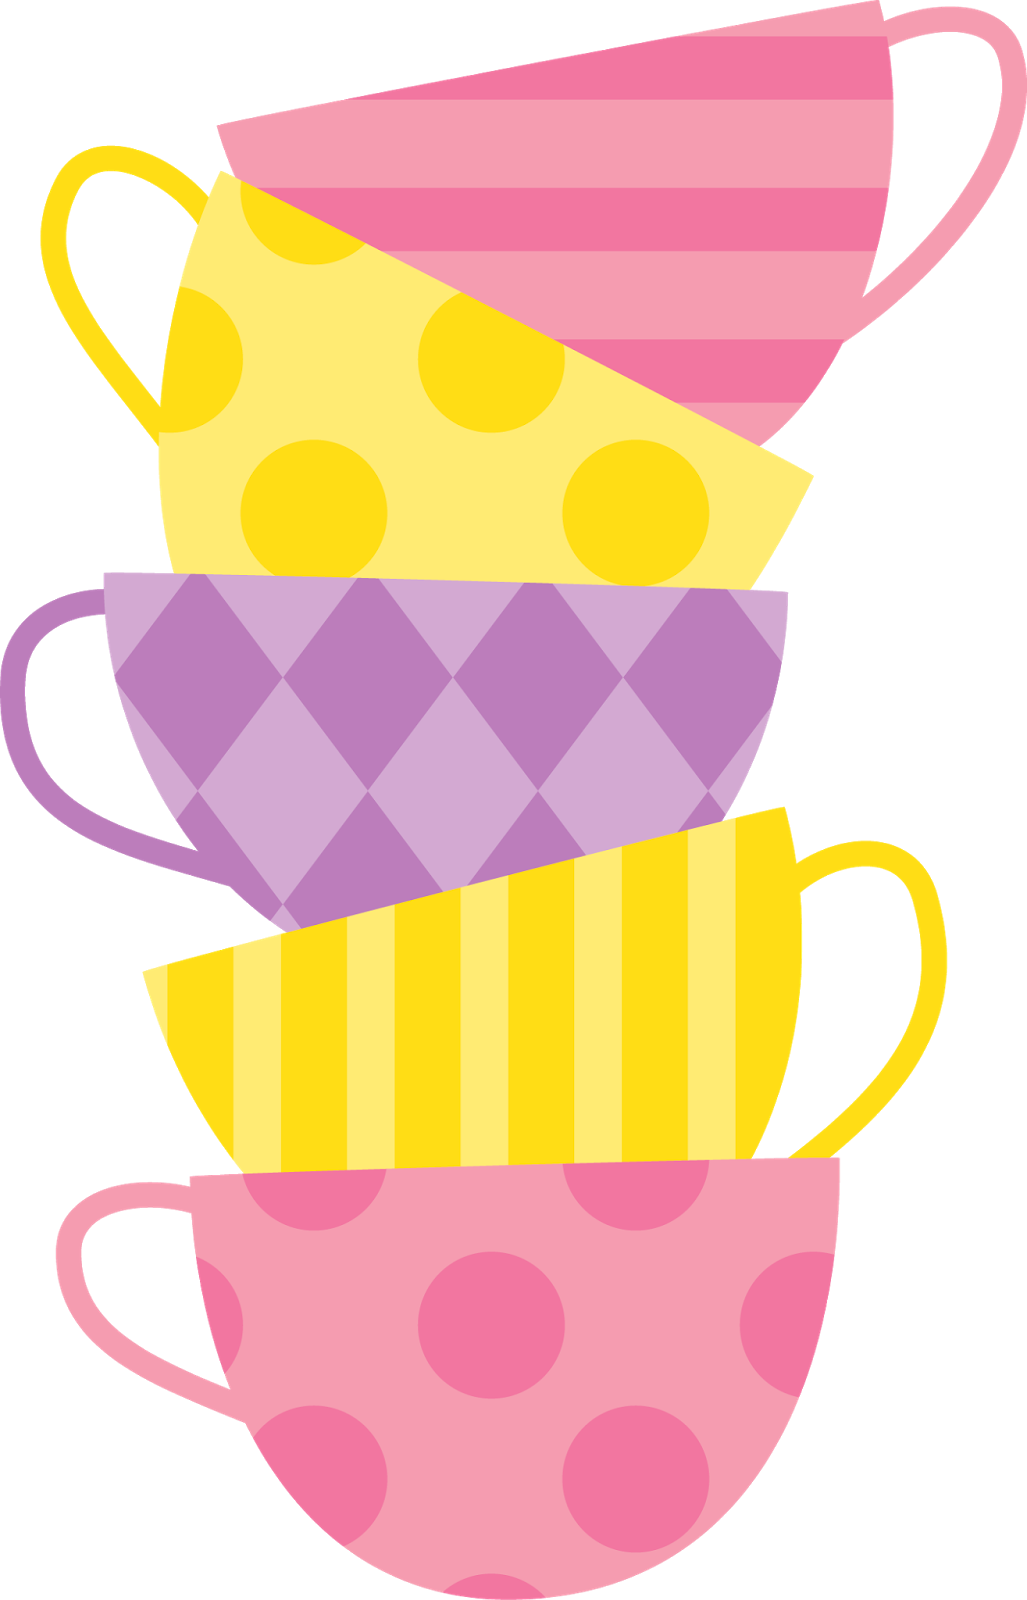 graphic royalty free download Wonderland clipart stacked teacup. Alice in tea cup